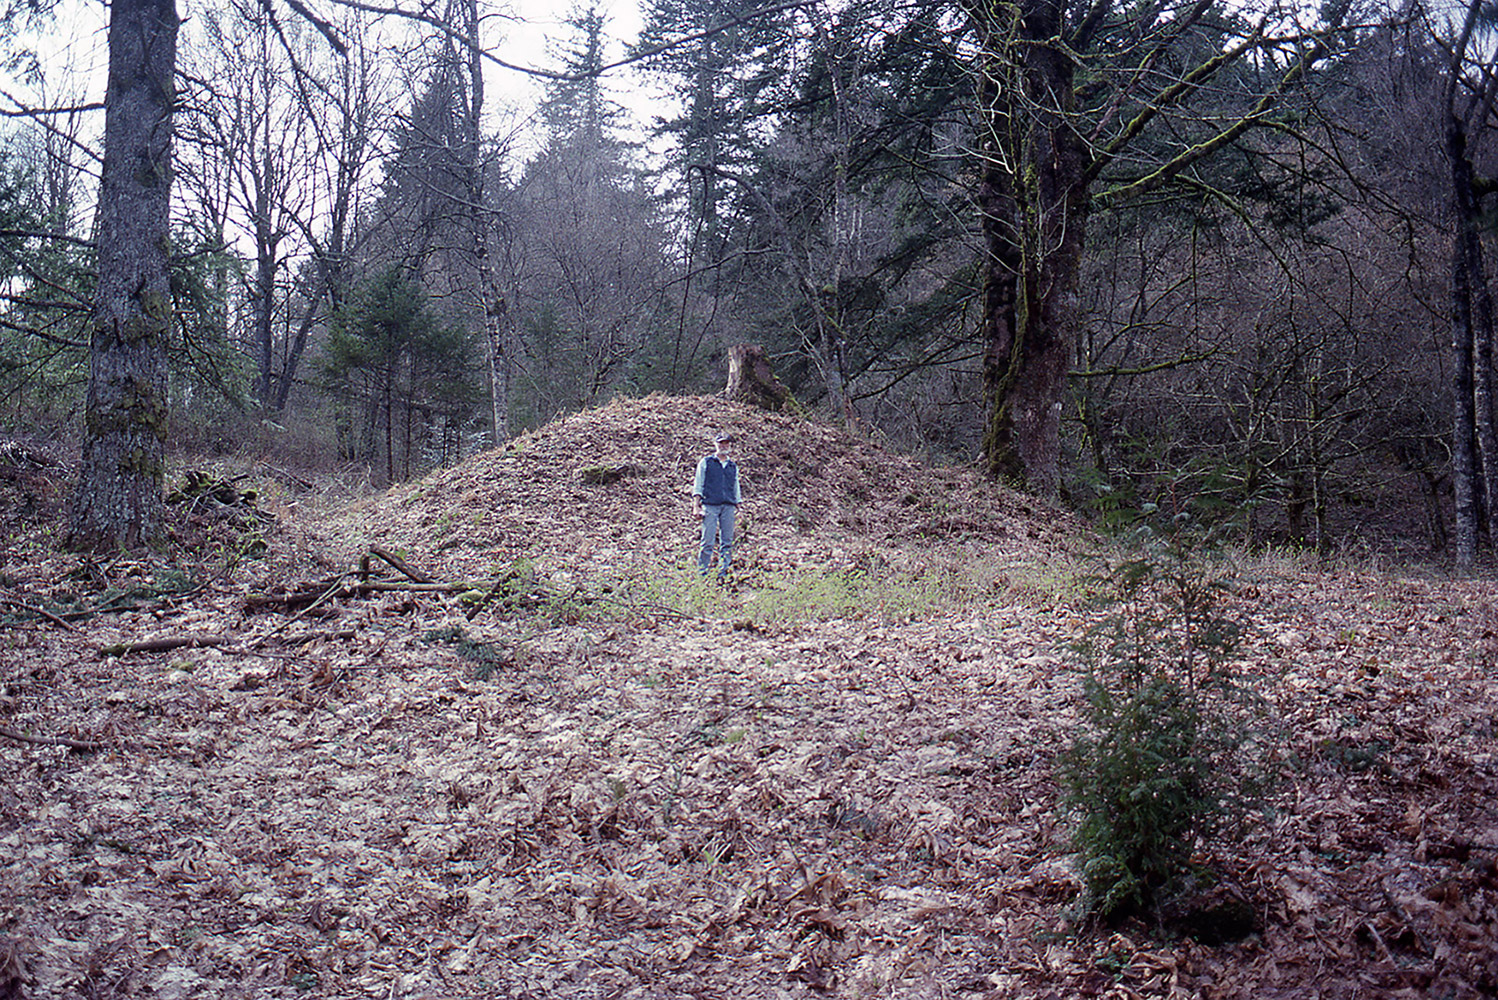 A man stands in front of an earthen mound covered in fallen leaves.